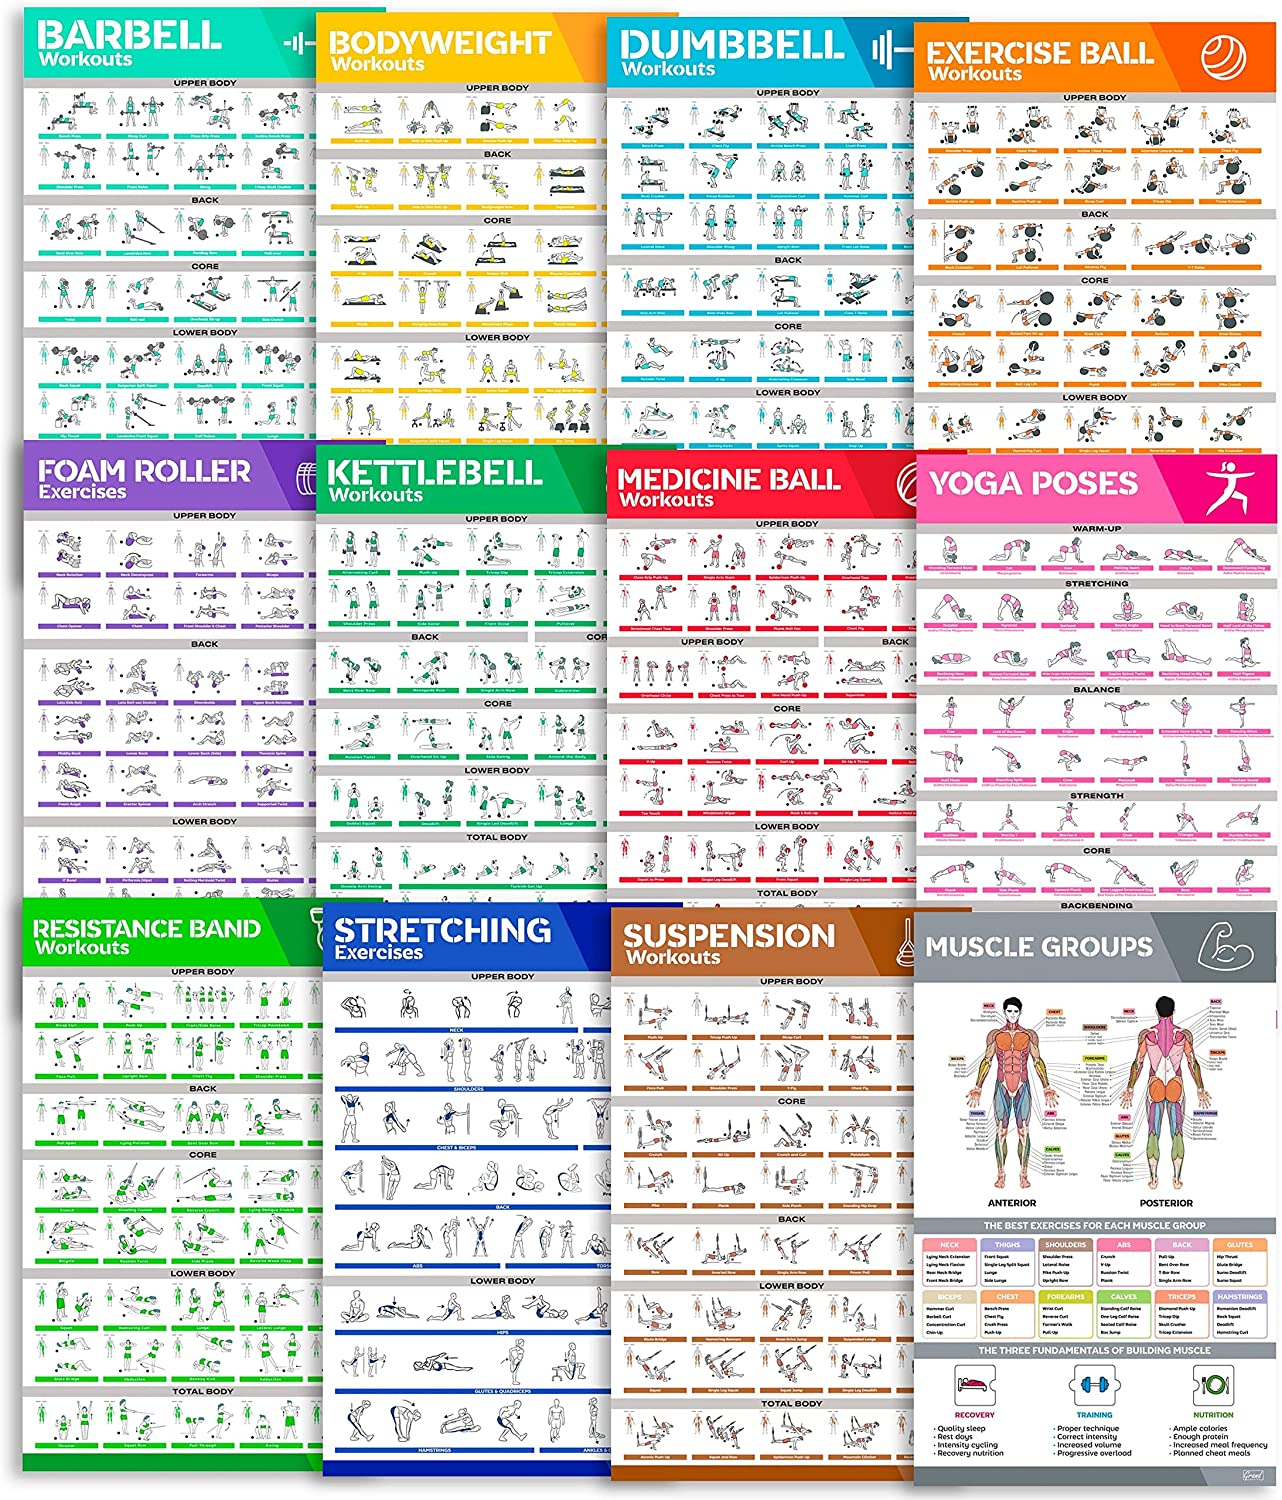 [12-PACK] Laminated Workout Poster Set - Perfect Large Size Workout Posters For Home Gym - Exercise Posters Include Dumbbell, Yoga Poses, Resistance Band, Kettlebell, Stretching & More Fitness Charts